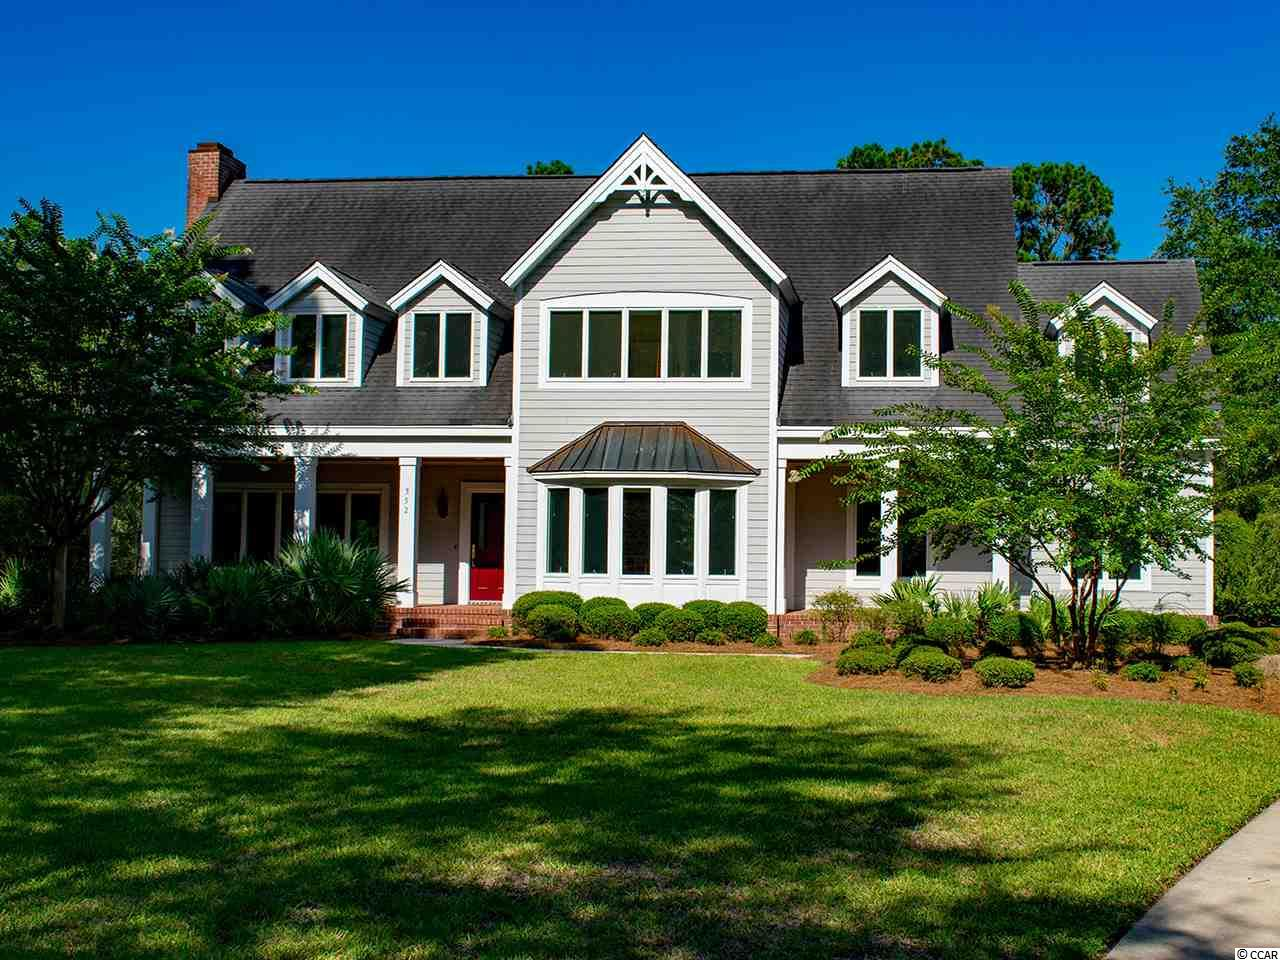 This is your chance for the peaceful, private retreat you've been looking for with over 220 ft. of lake frontage in the large back yard! Set on a full acre on DeBordieu's coveted Old Carriage Loop, this traditional home is solid and move in ready. Features on the first floor include a wood burning fireplace and built in shelves in a living room that opens up to a fabulous screened porch as well as a formal dining room with intricate dental crown and chair rail moldings. The kitchen is right off of the dining room and includes a work island, thermador oven and cozy breakfast nook. Upstairs is the oversized Master Suite with a generous walk in closet and large bathroom with whirlpool tub. Down the hall from the Master you will find two other guest rooms, each with an en suite bathroom, as well as an office and bonus room. The two car garage has plenty of room for storage. DeBordieu is a private, oceanfront, gated community with miles of beach, easy access to the North Inlet and Atlantic Ocean, a famous 18 hole Pete Dye designed golf course, dining, pools, tennis and much, much more.